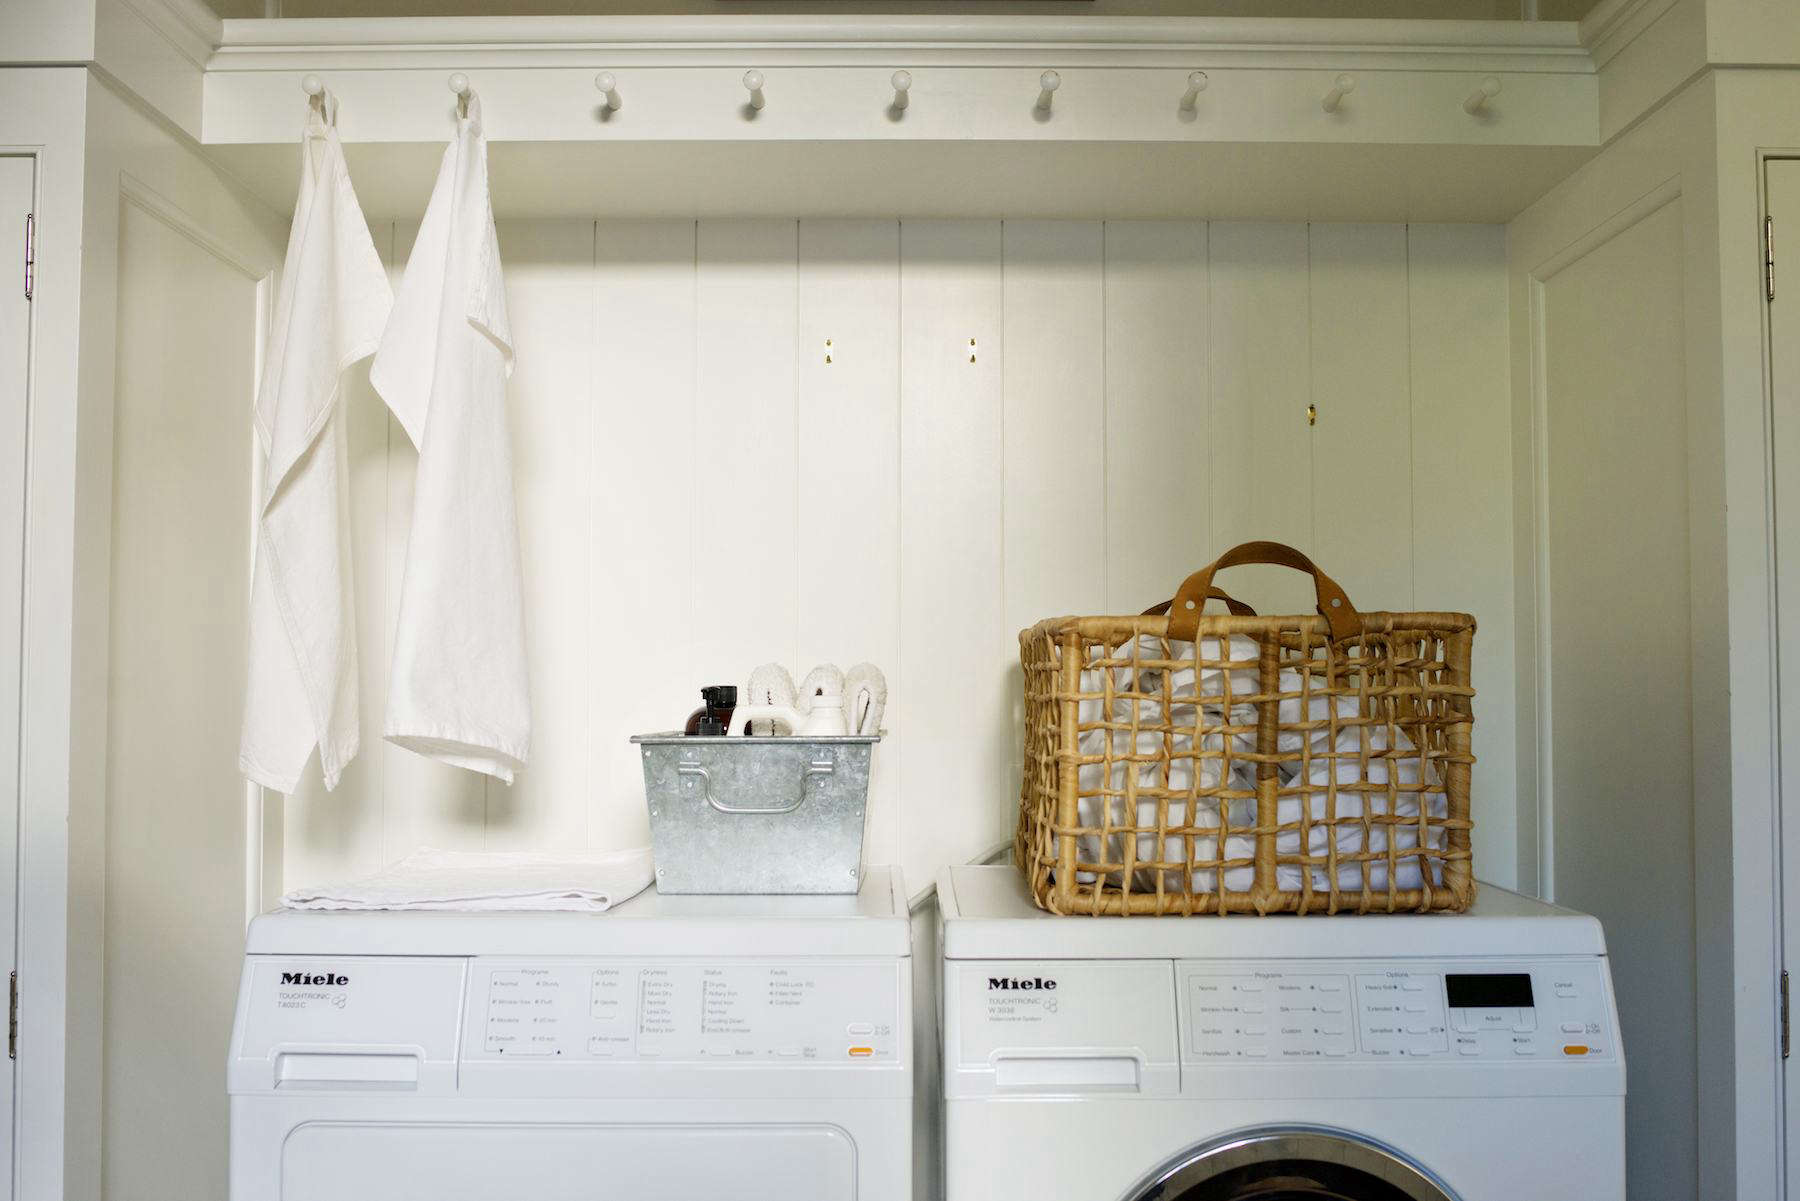 Remodeling 101 What To Know When Replacing Your Washer Or Dryer Electrical How Do I Connect A With Four Prong Plug Depending On Much Use It Gets Washing Machine Will Generally Work Well For About Dozen Years Before Starts Acting Up Dryers Have Fewer Moving